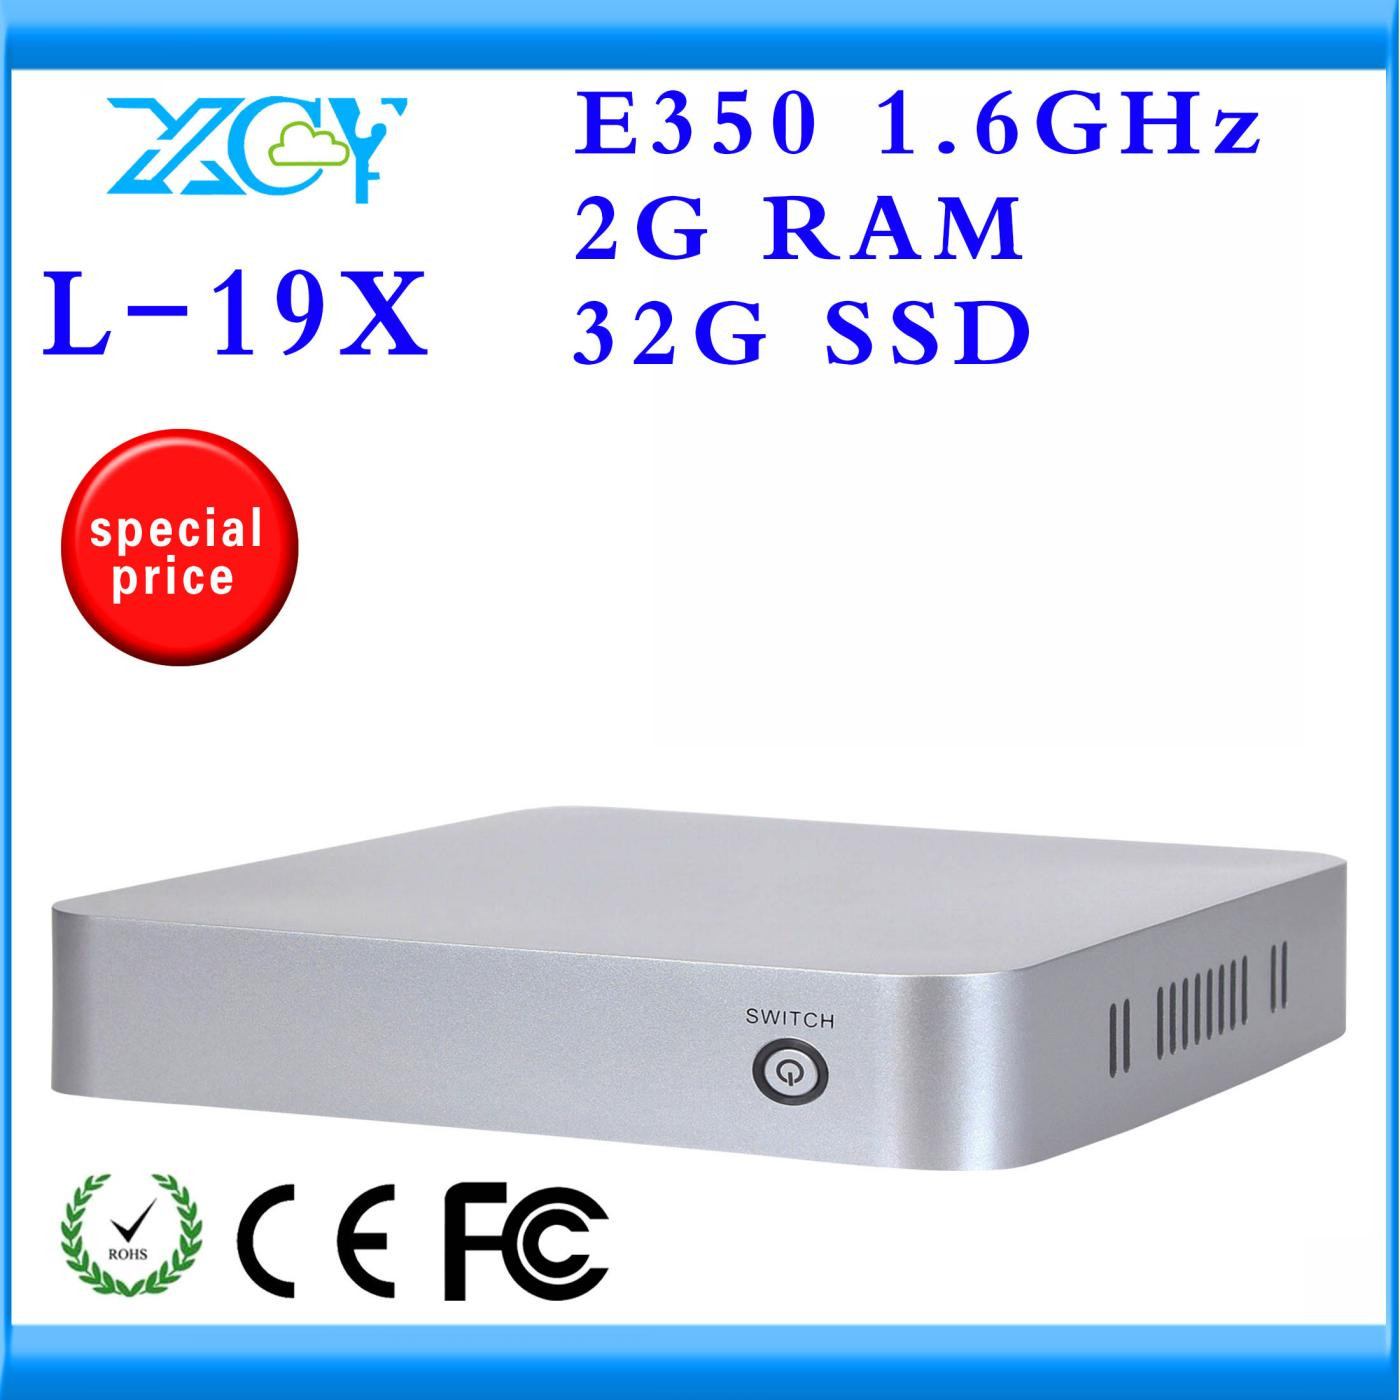 Industrial Computer Chassis ,htpc mini acrylic case Mini PC Unboxing,Boot speed all day is very good L19X !!!(China (Mainland))